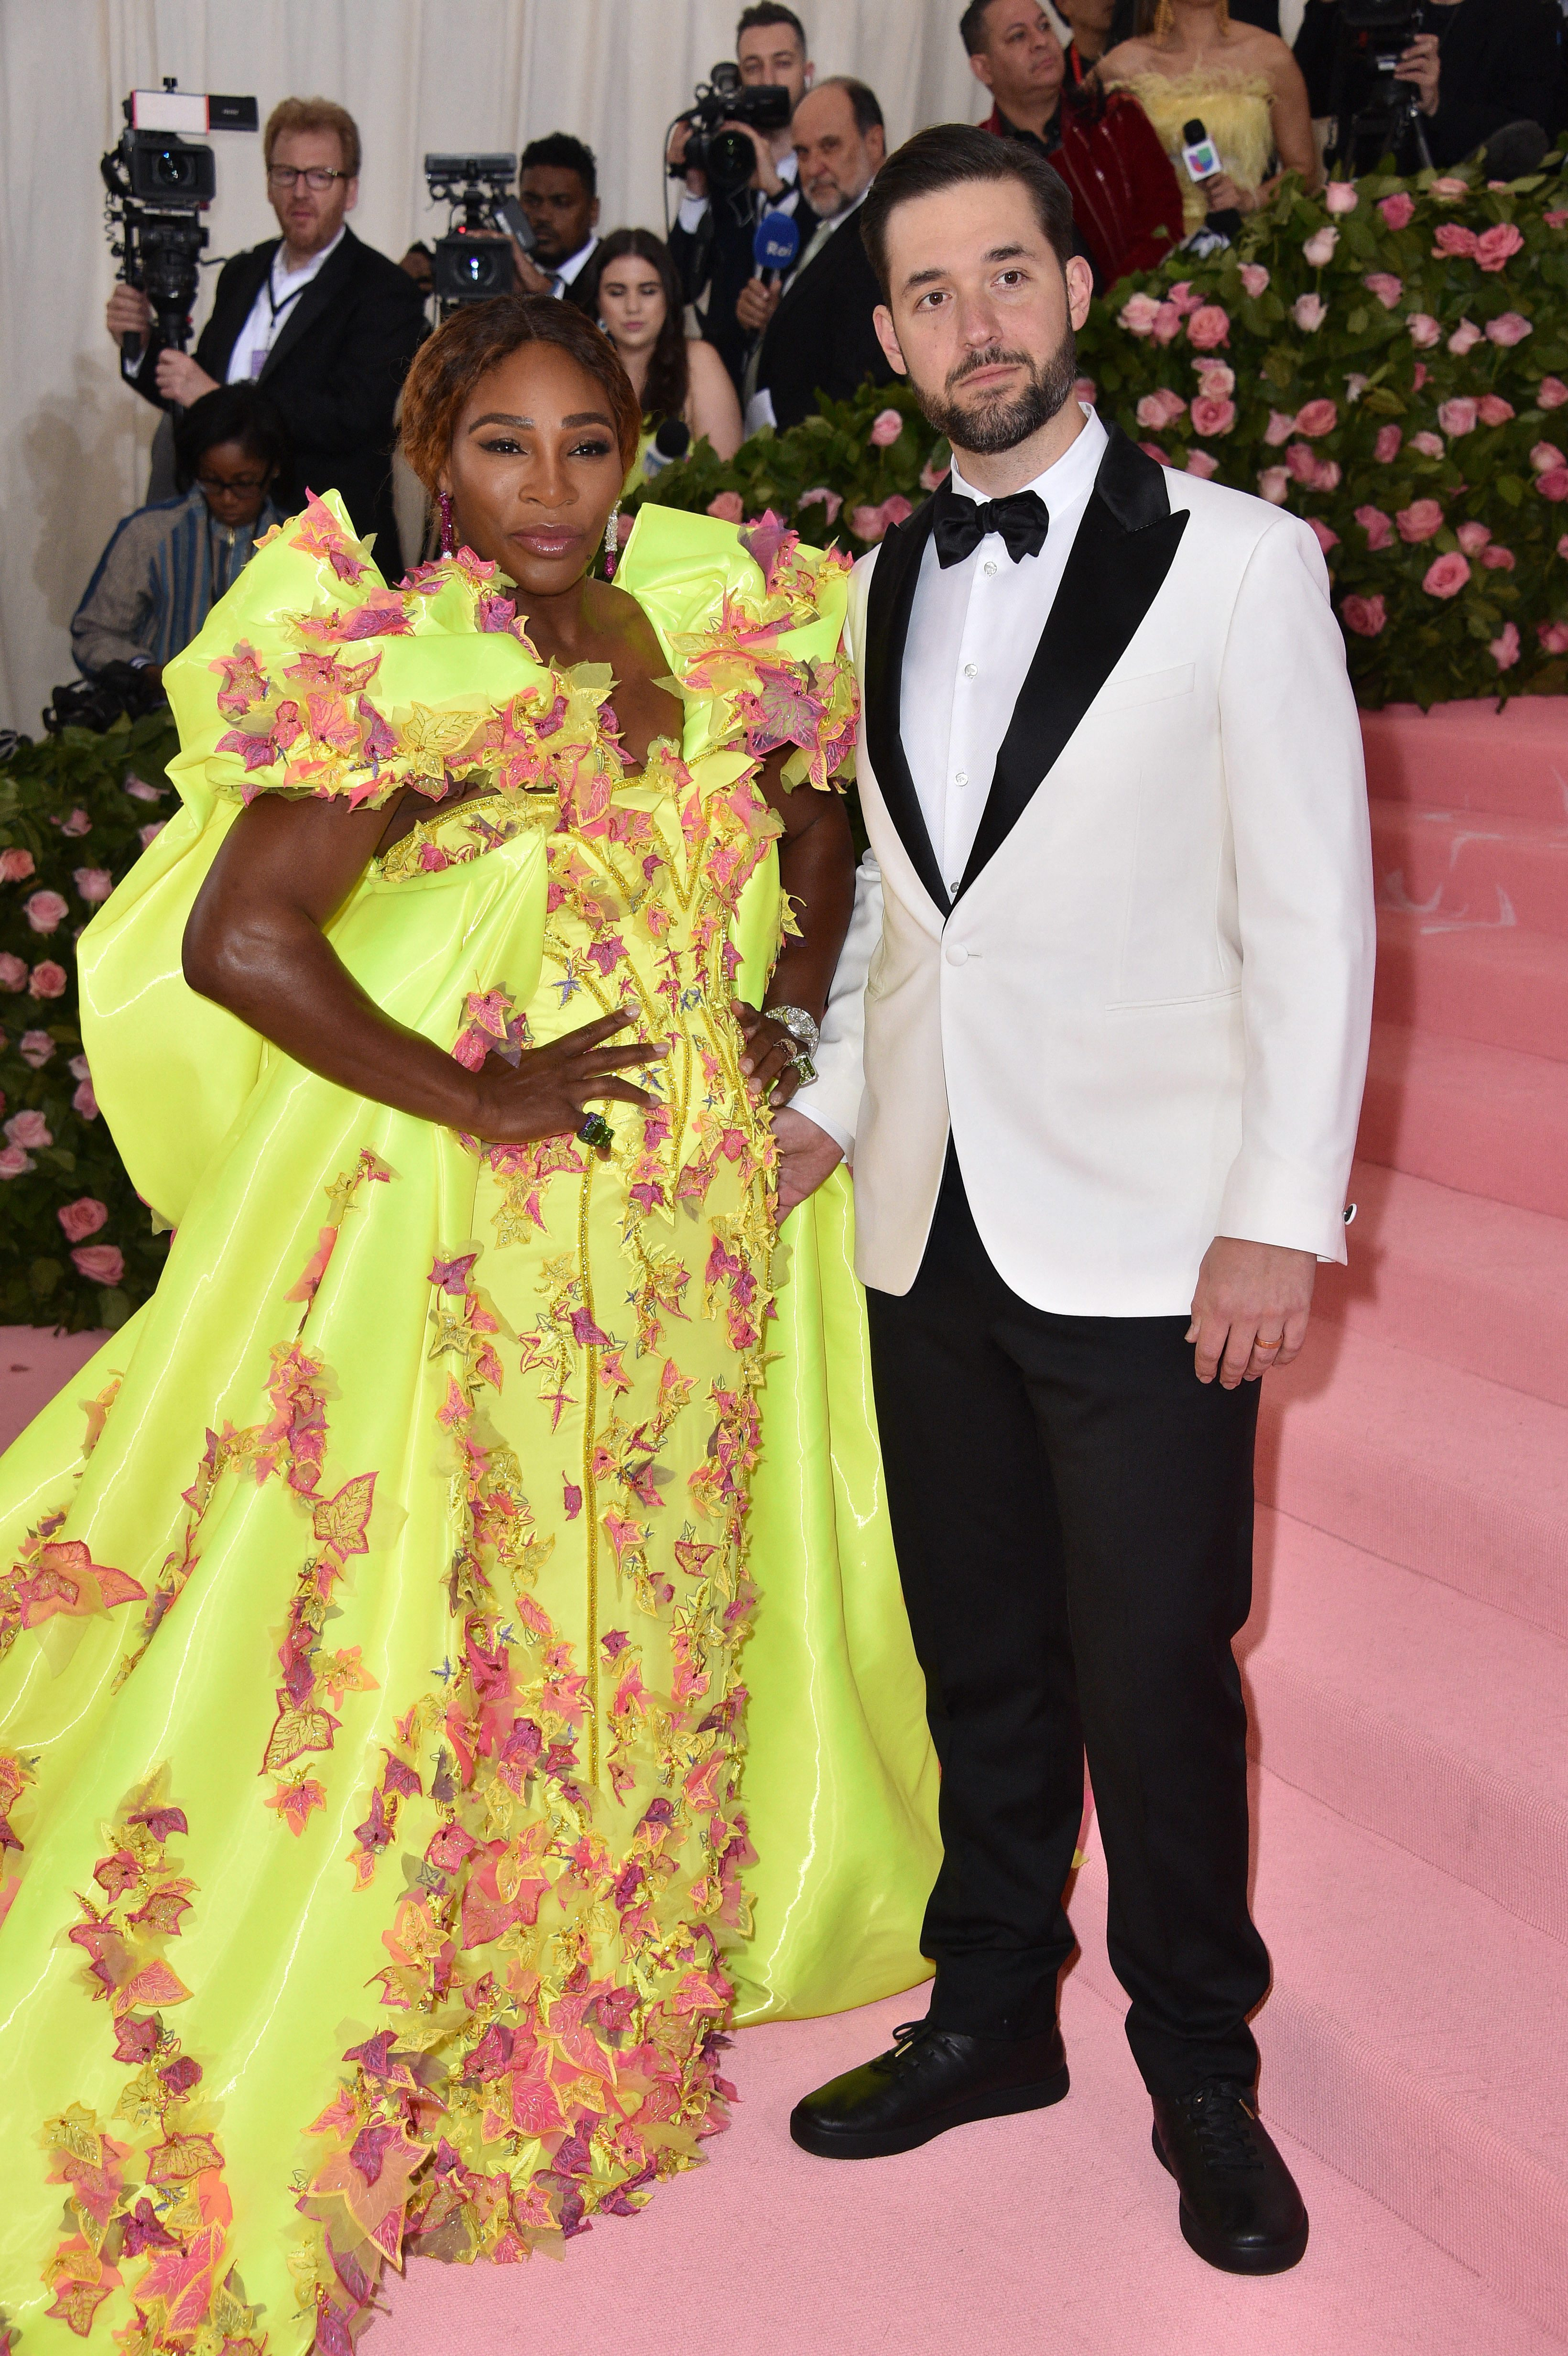 Alexis Ohanian Shows Off Prized Rookie Card Of Wife Serena Williams